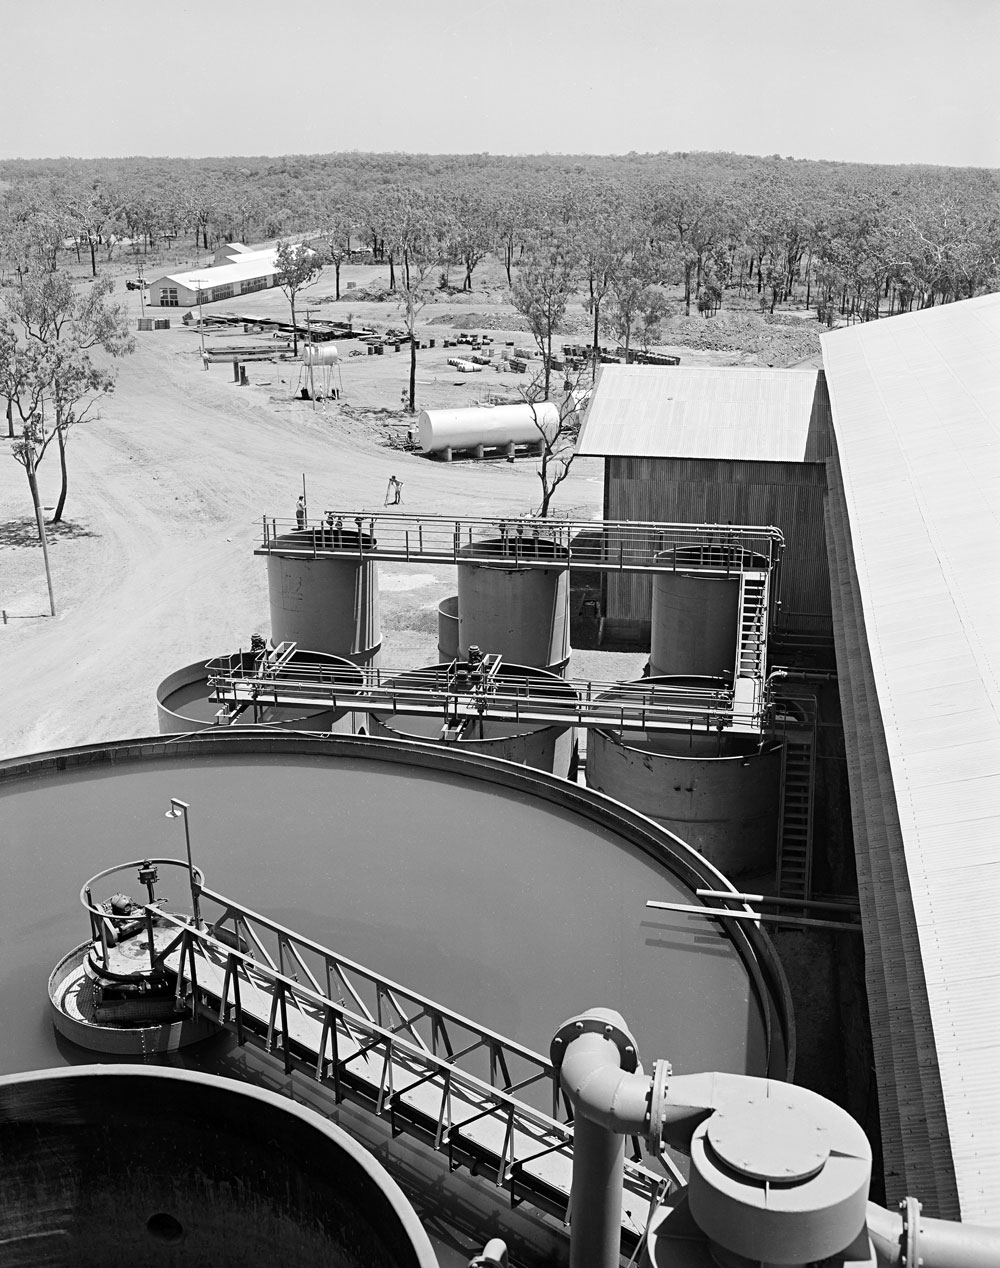 Treatment plant, Rum Jungle (1957). National Archives of Australia: A1200, L23831